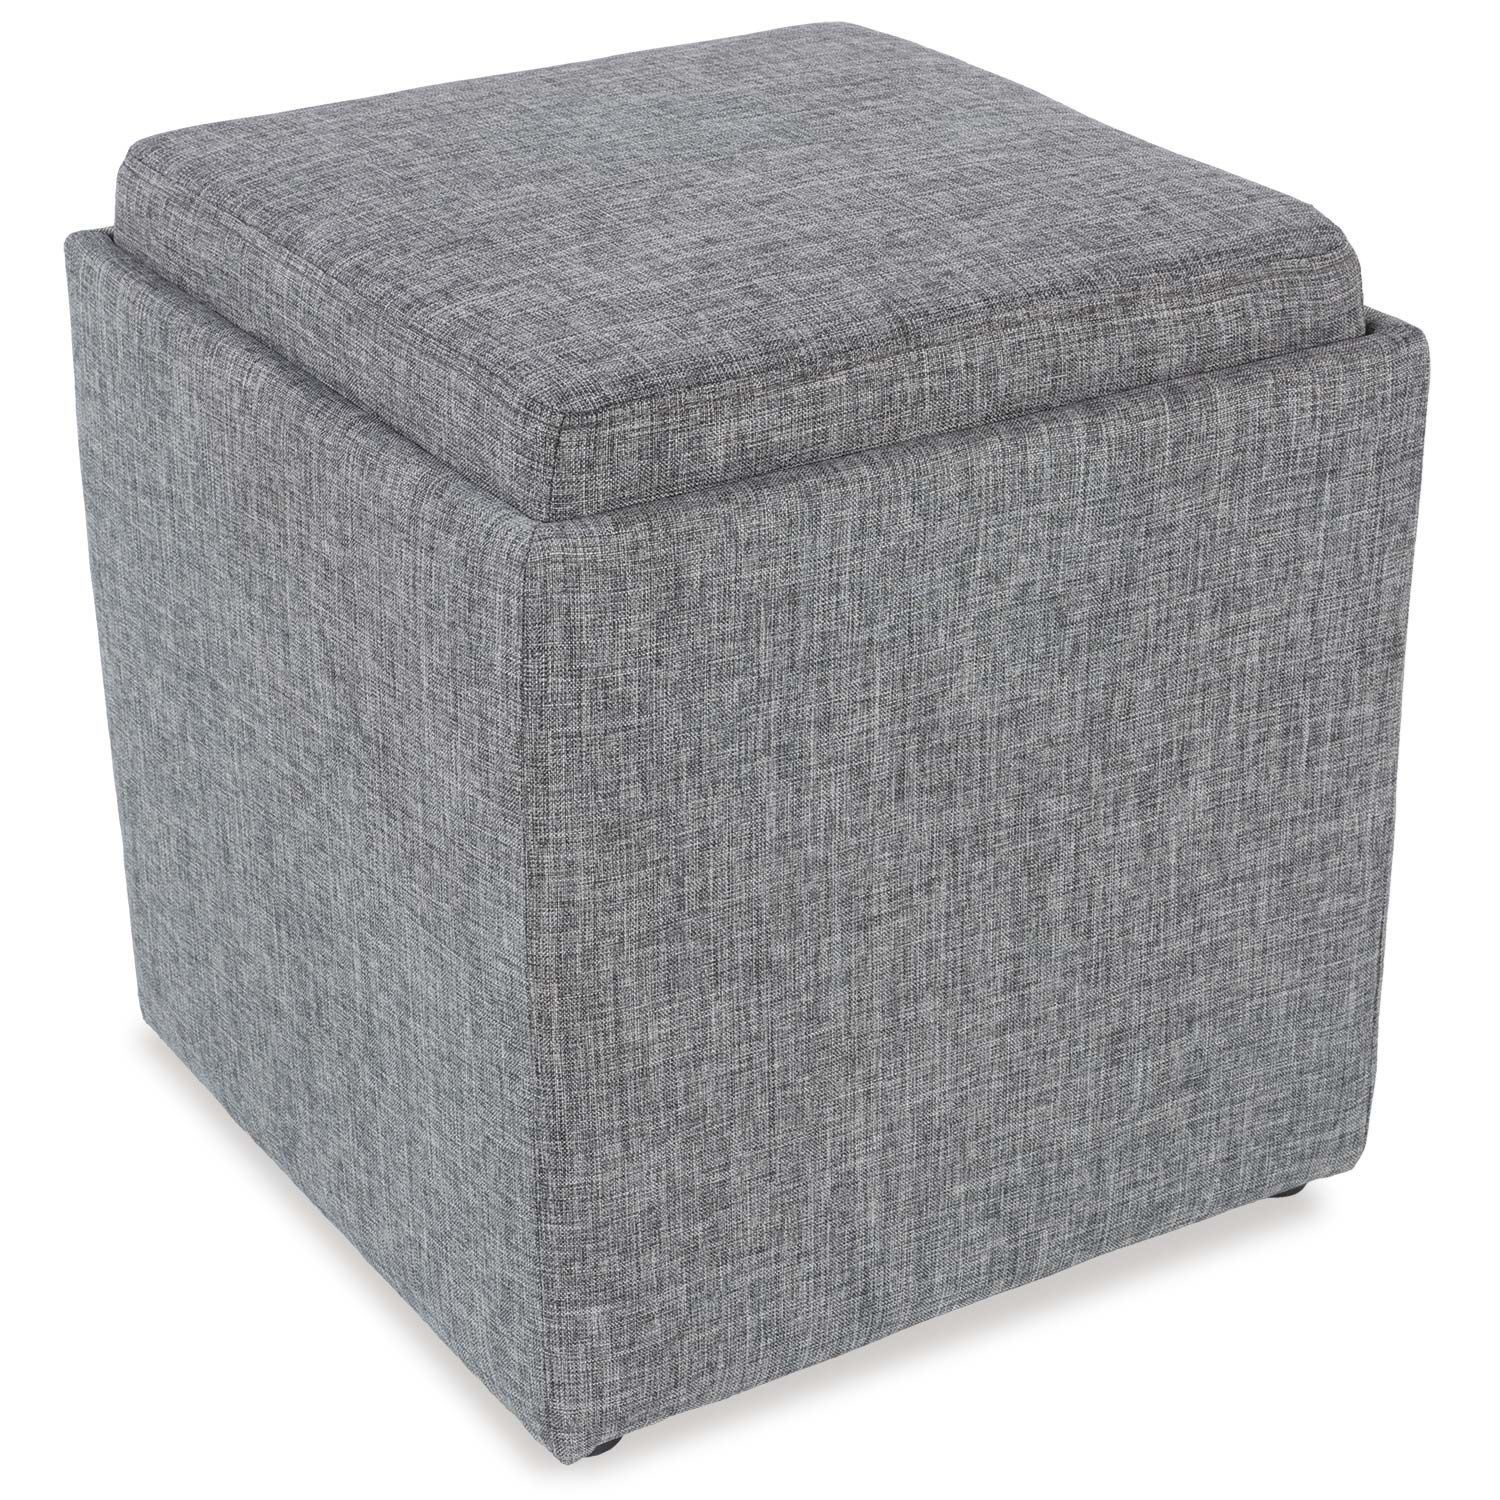 Miraculous Gray Storage Ottoman With Tray Gmtry Best Dining Table And Chair Ideas Images Gmtryco